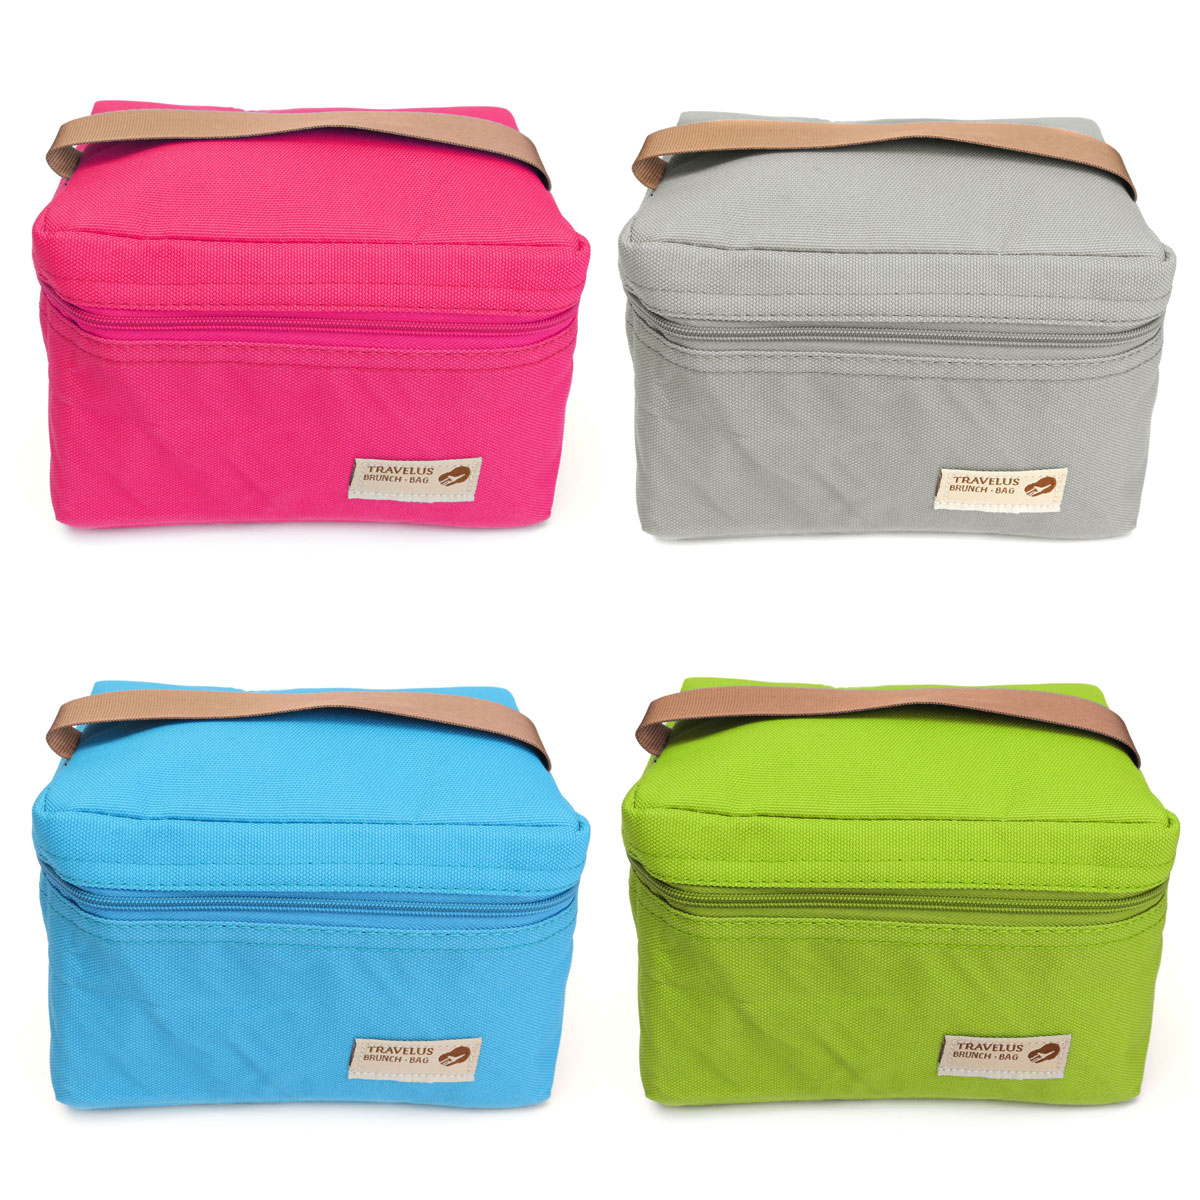 Meigar Portable lunch insulated bags Double Deck Waterproof Thermal Hot Cold Bag Travel Picnic Lunch Storage Box Tote Outdoor Cooler for Office Students to Carry Bento Food